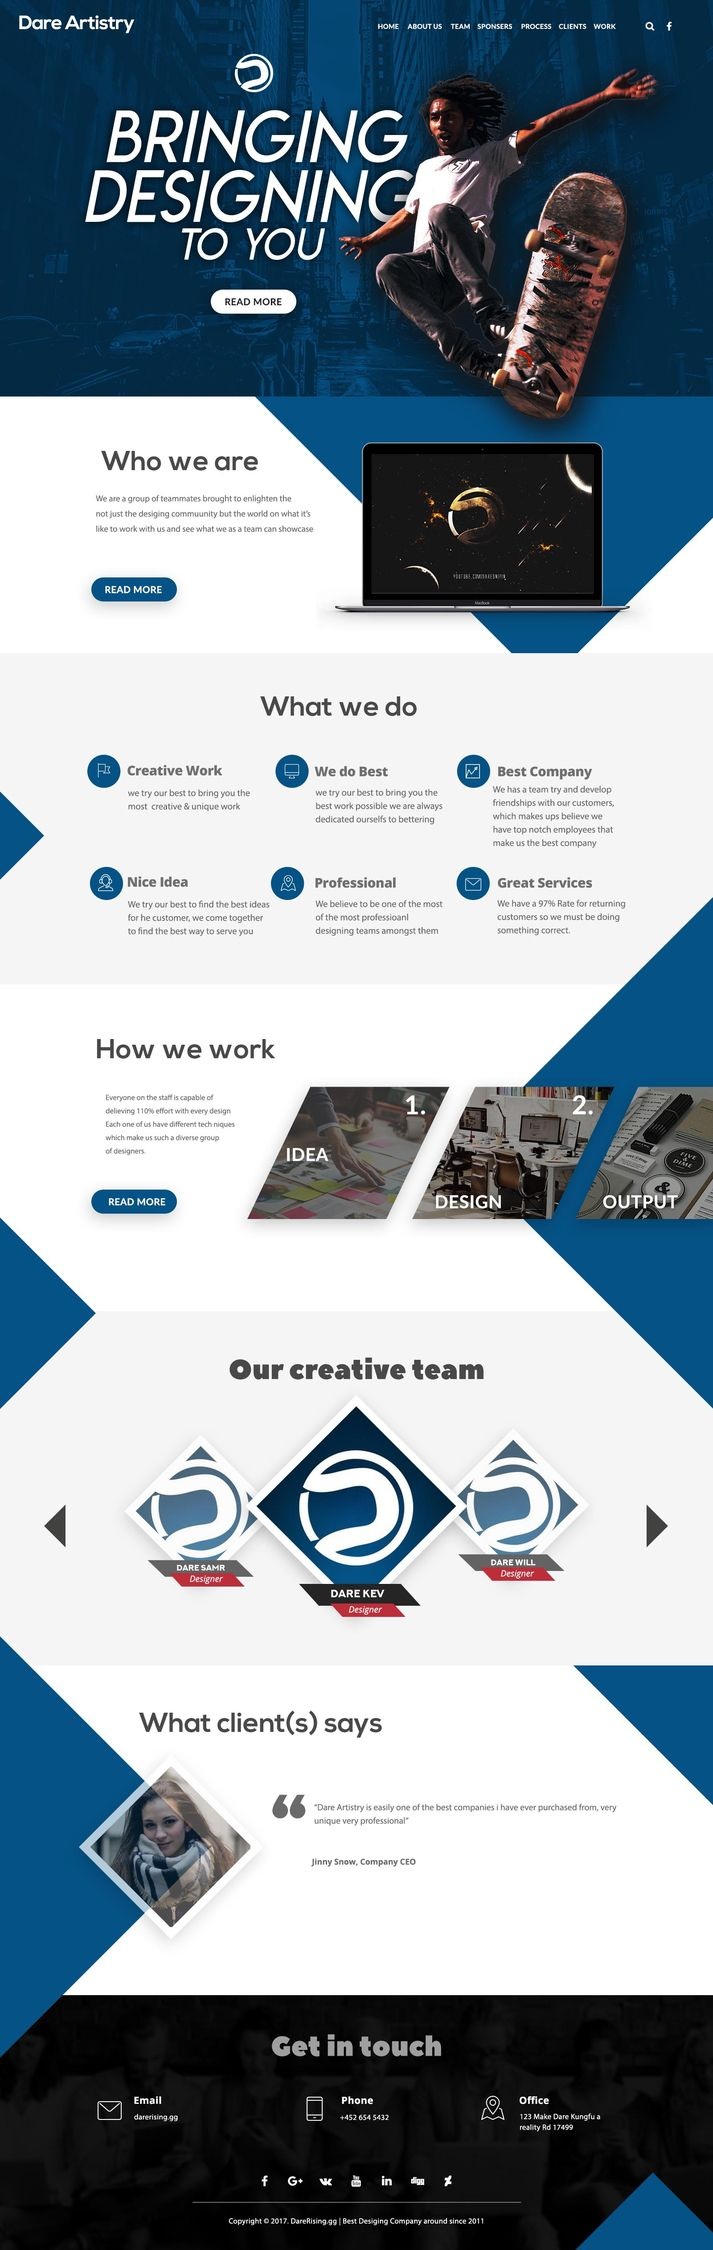 Website UI - indigoes | ello